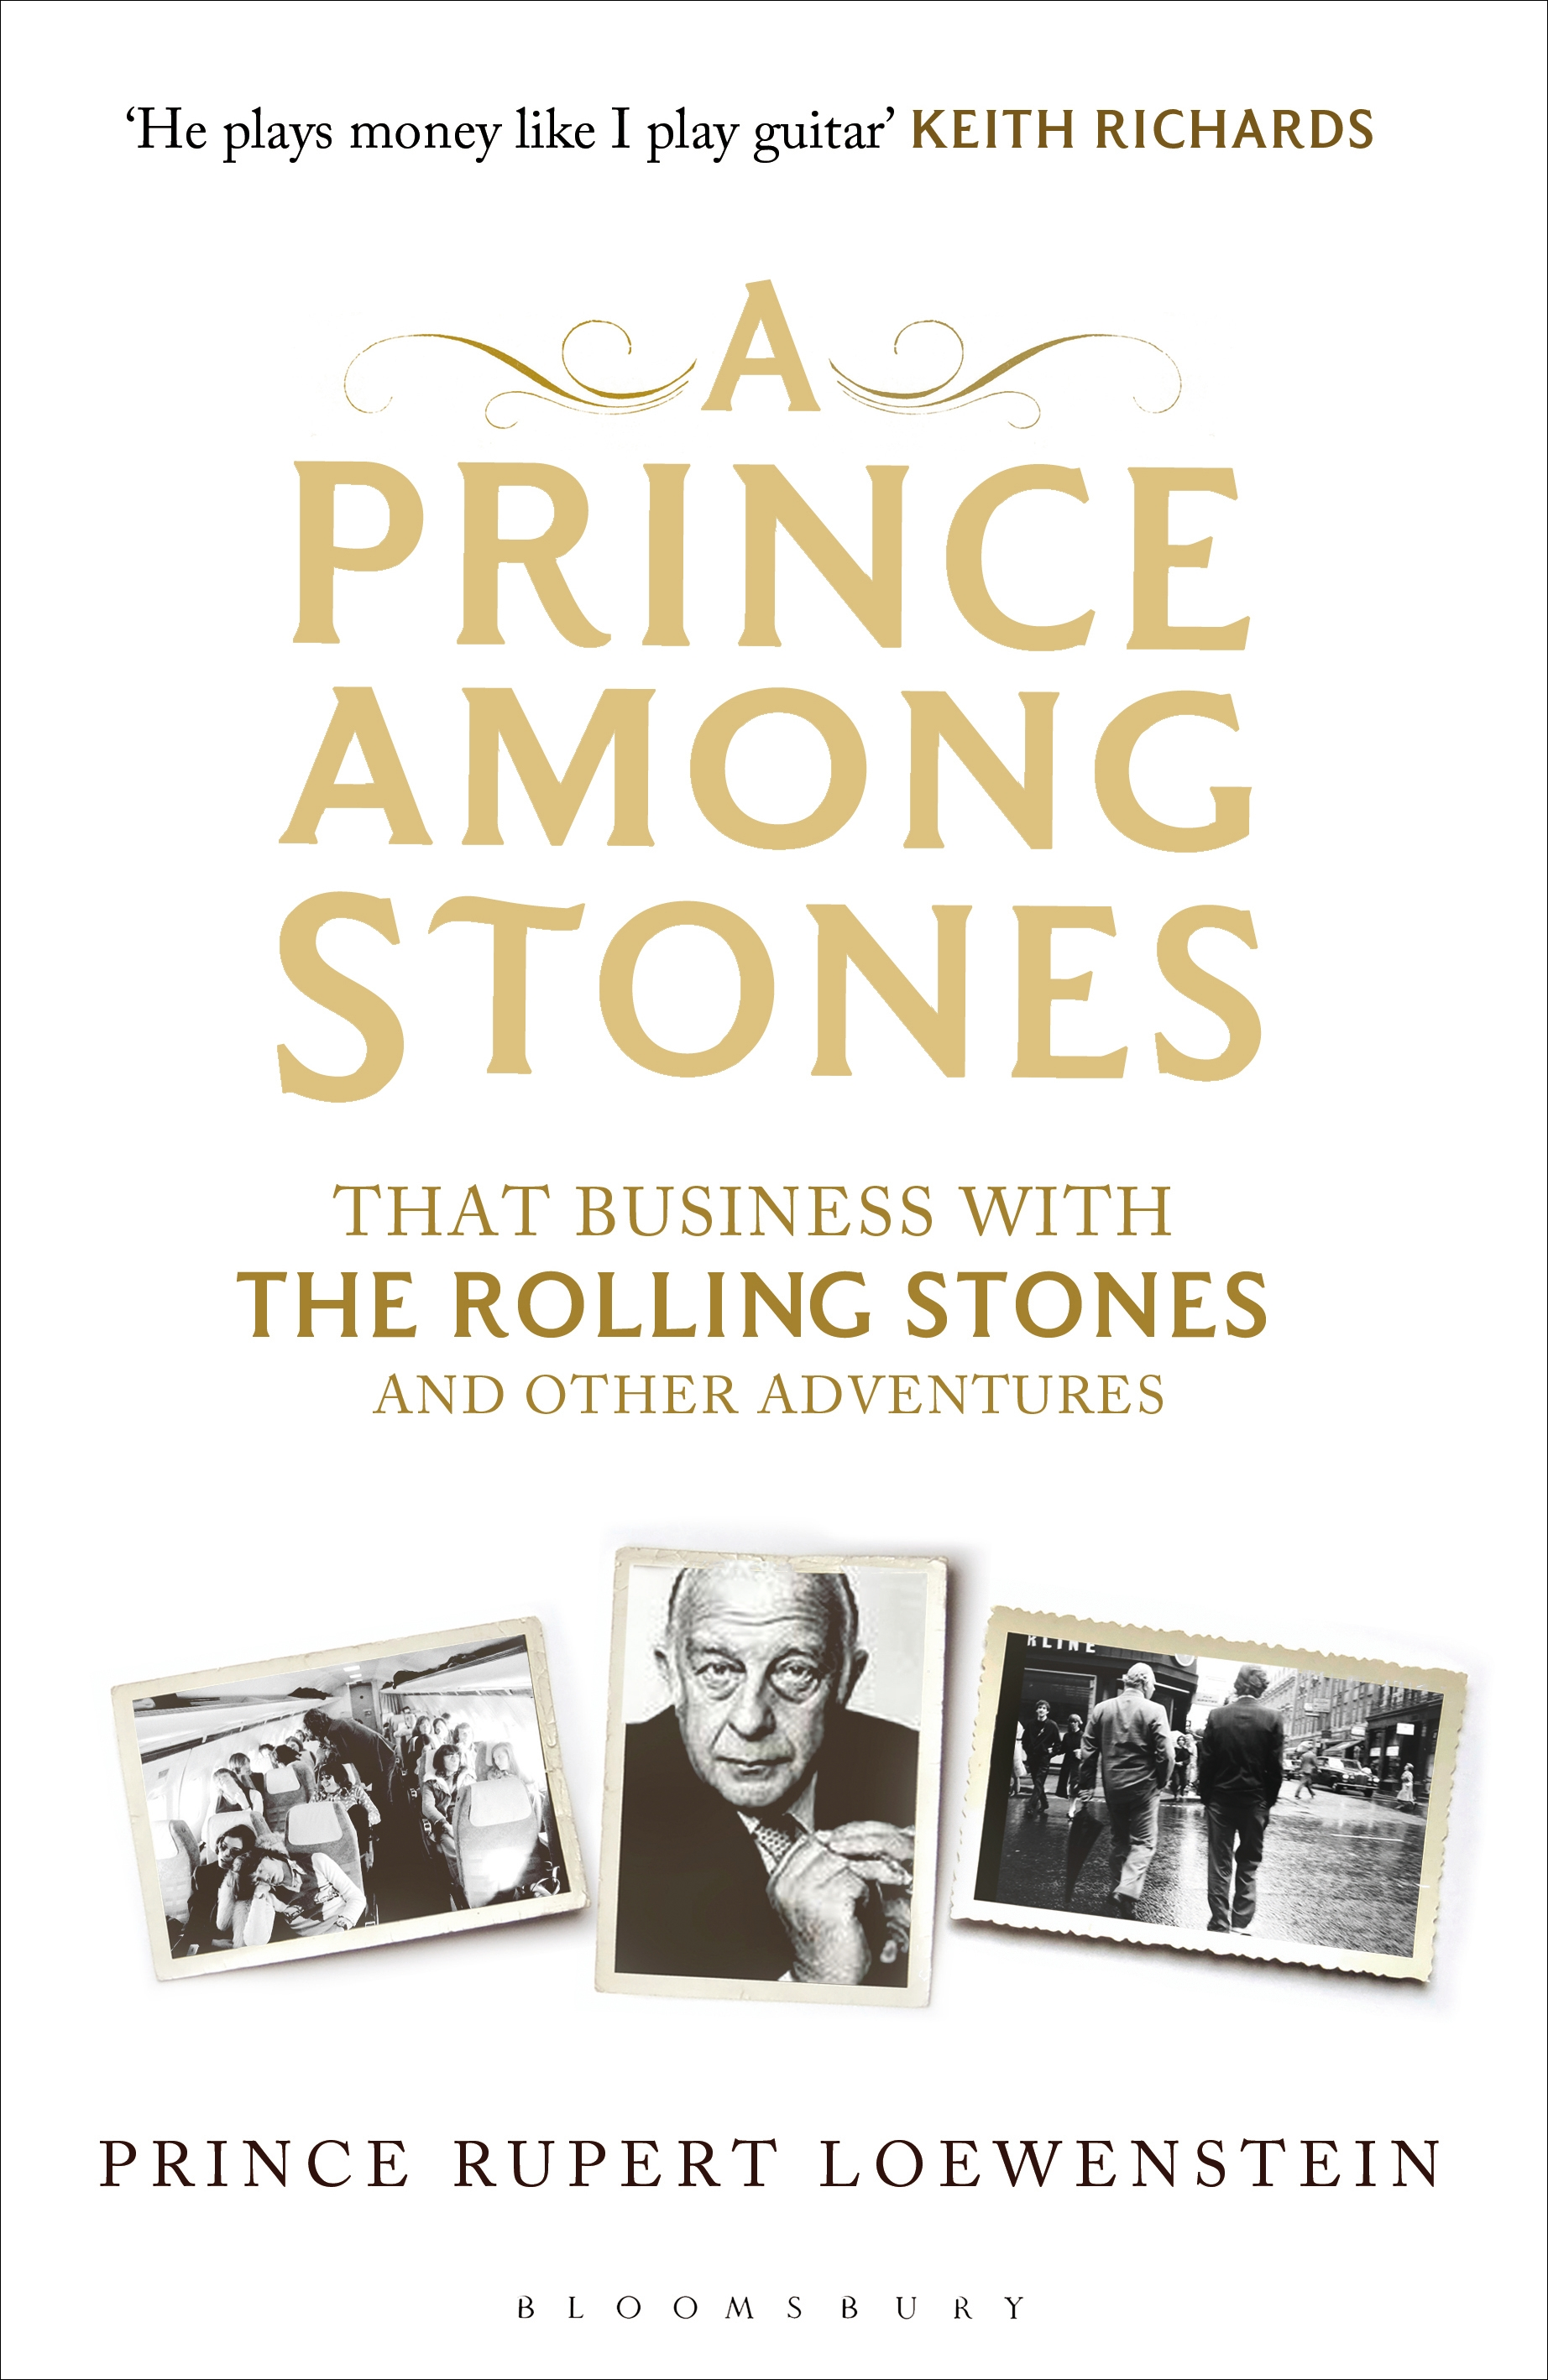 A Prince Among Stones That Business with The Rolling Stones and Other Adventures